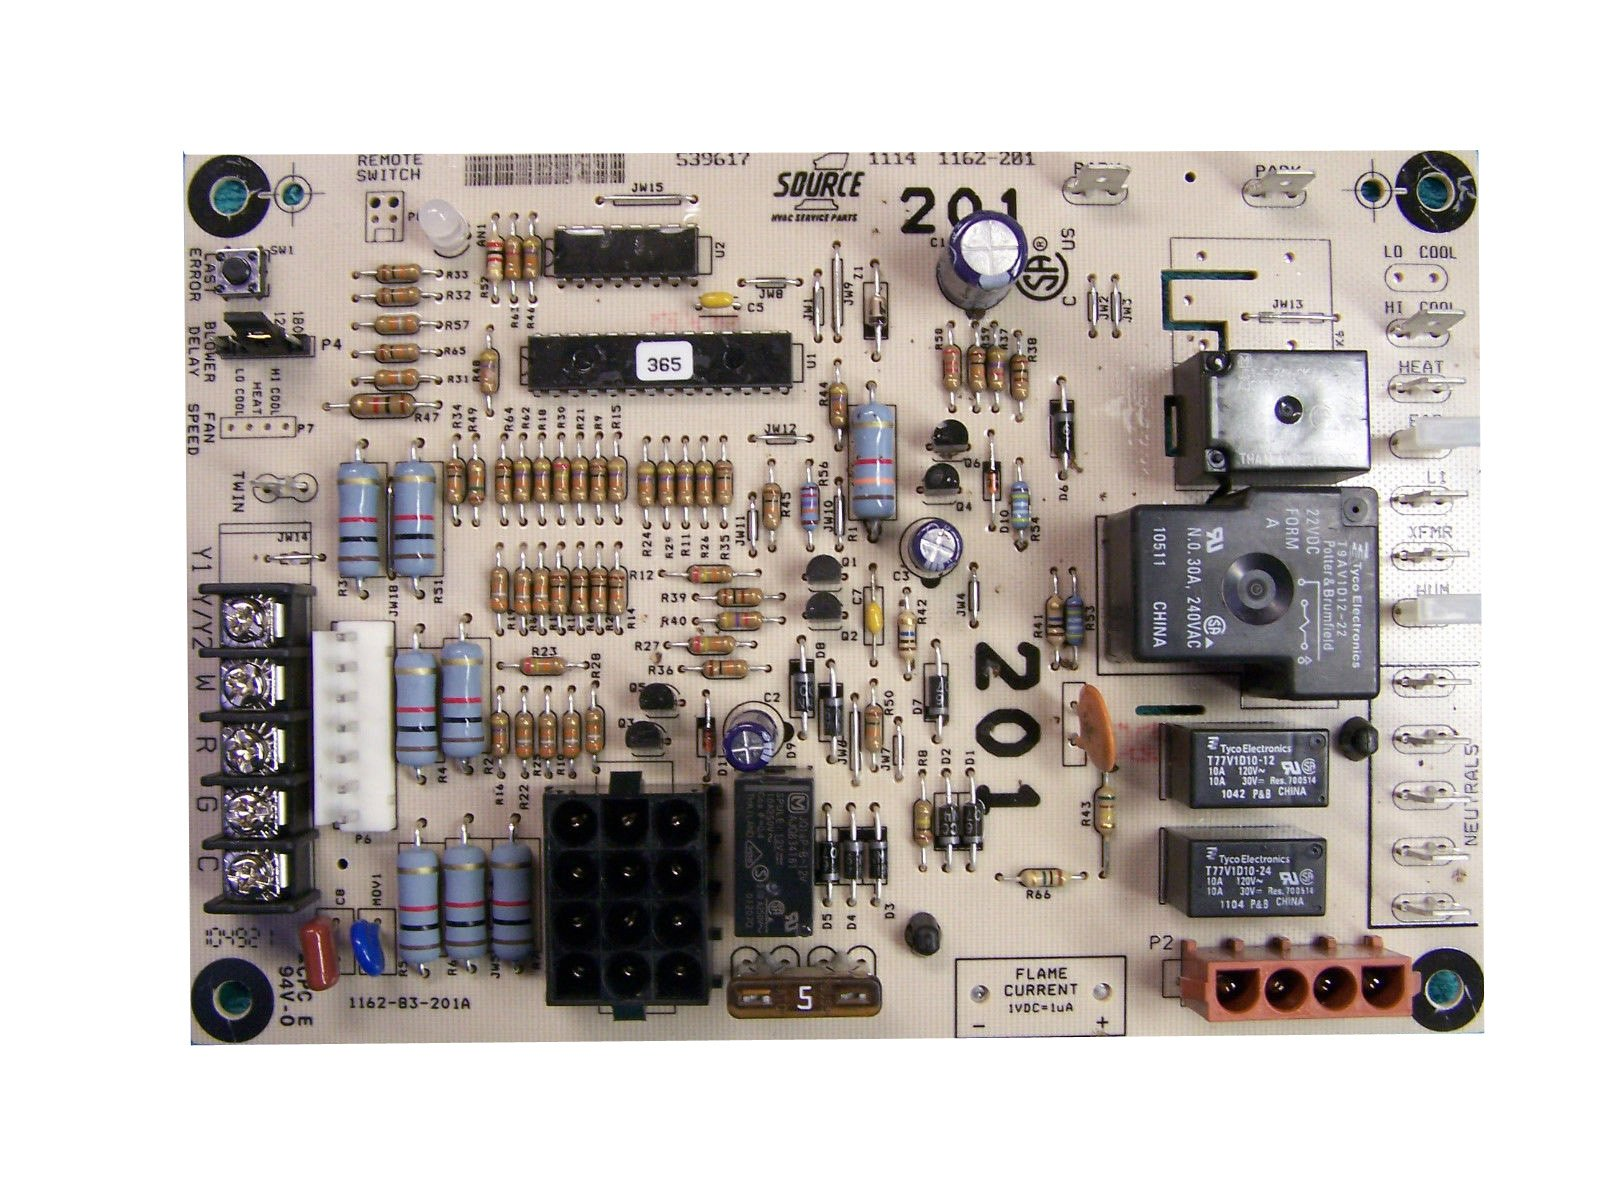 50A50-241 - OEM Upgraded White Rogers Furnace Control Circuit Board